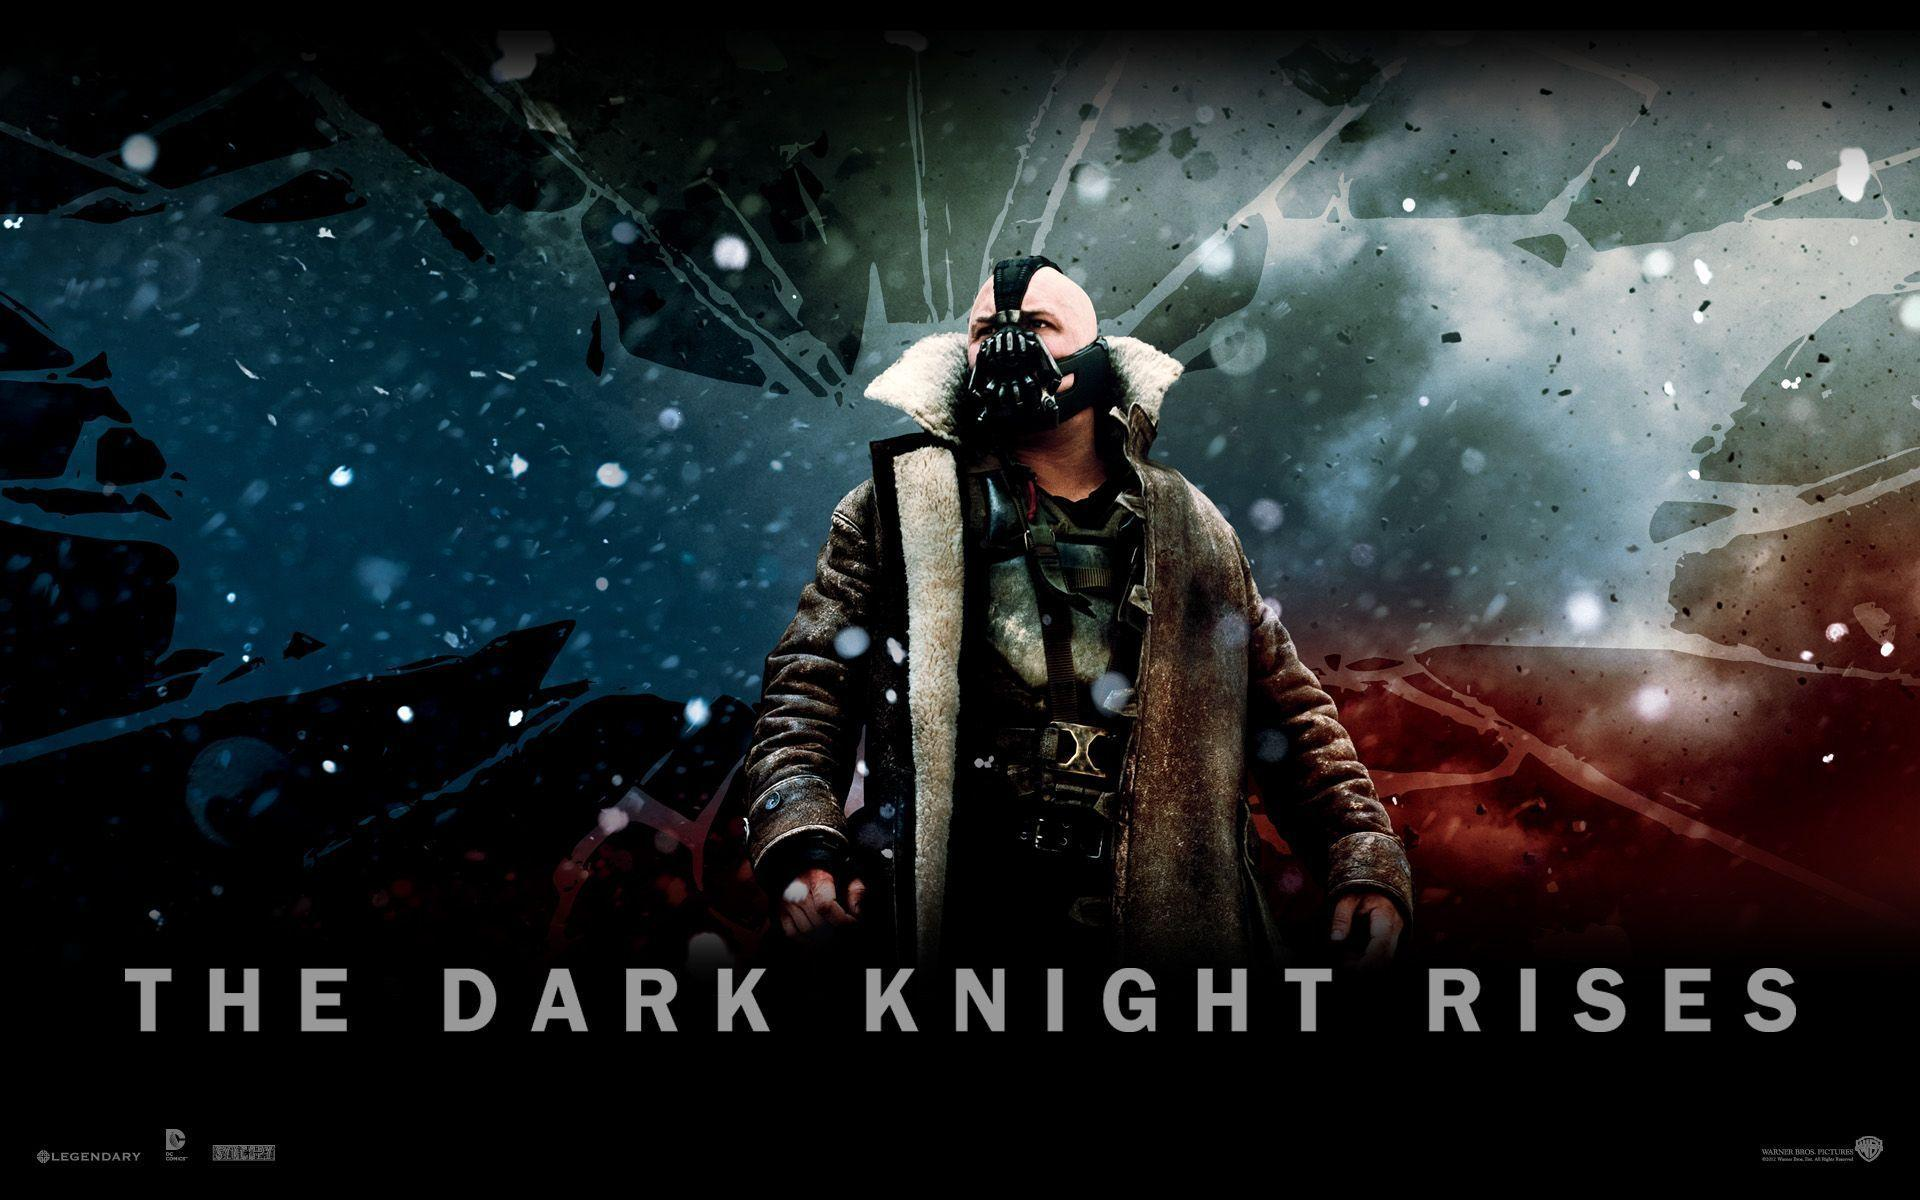 """dark knight essays Music has been in movies since the first """"silent films"""" were made, and continues to be one of the most influential factors in determining how beautiful and lighthearted, or how horrific and tragic a film is perceived by the audience."""